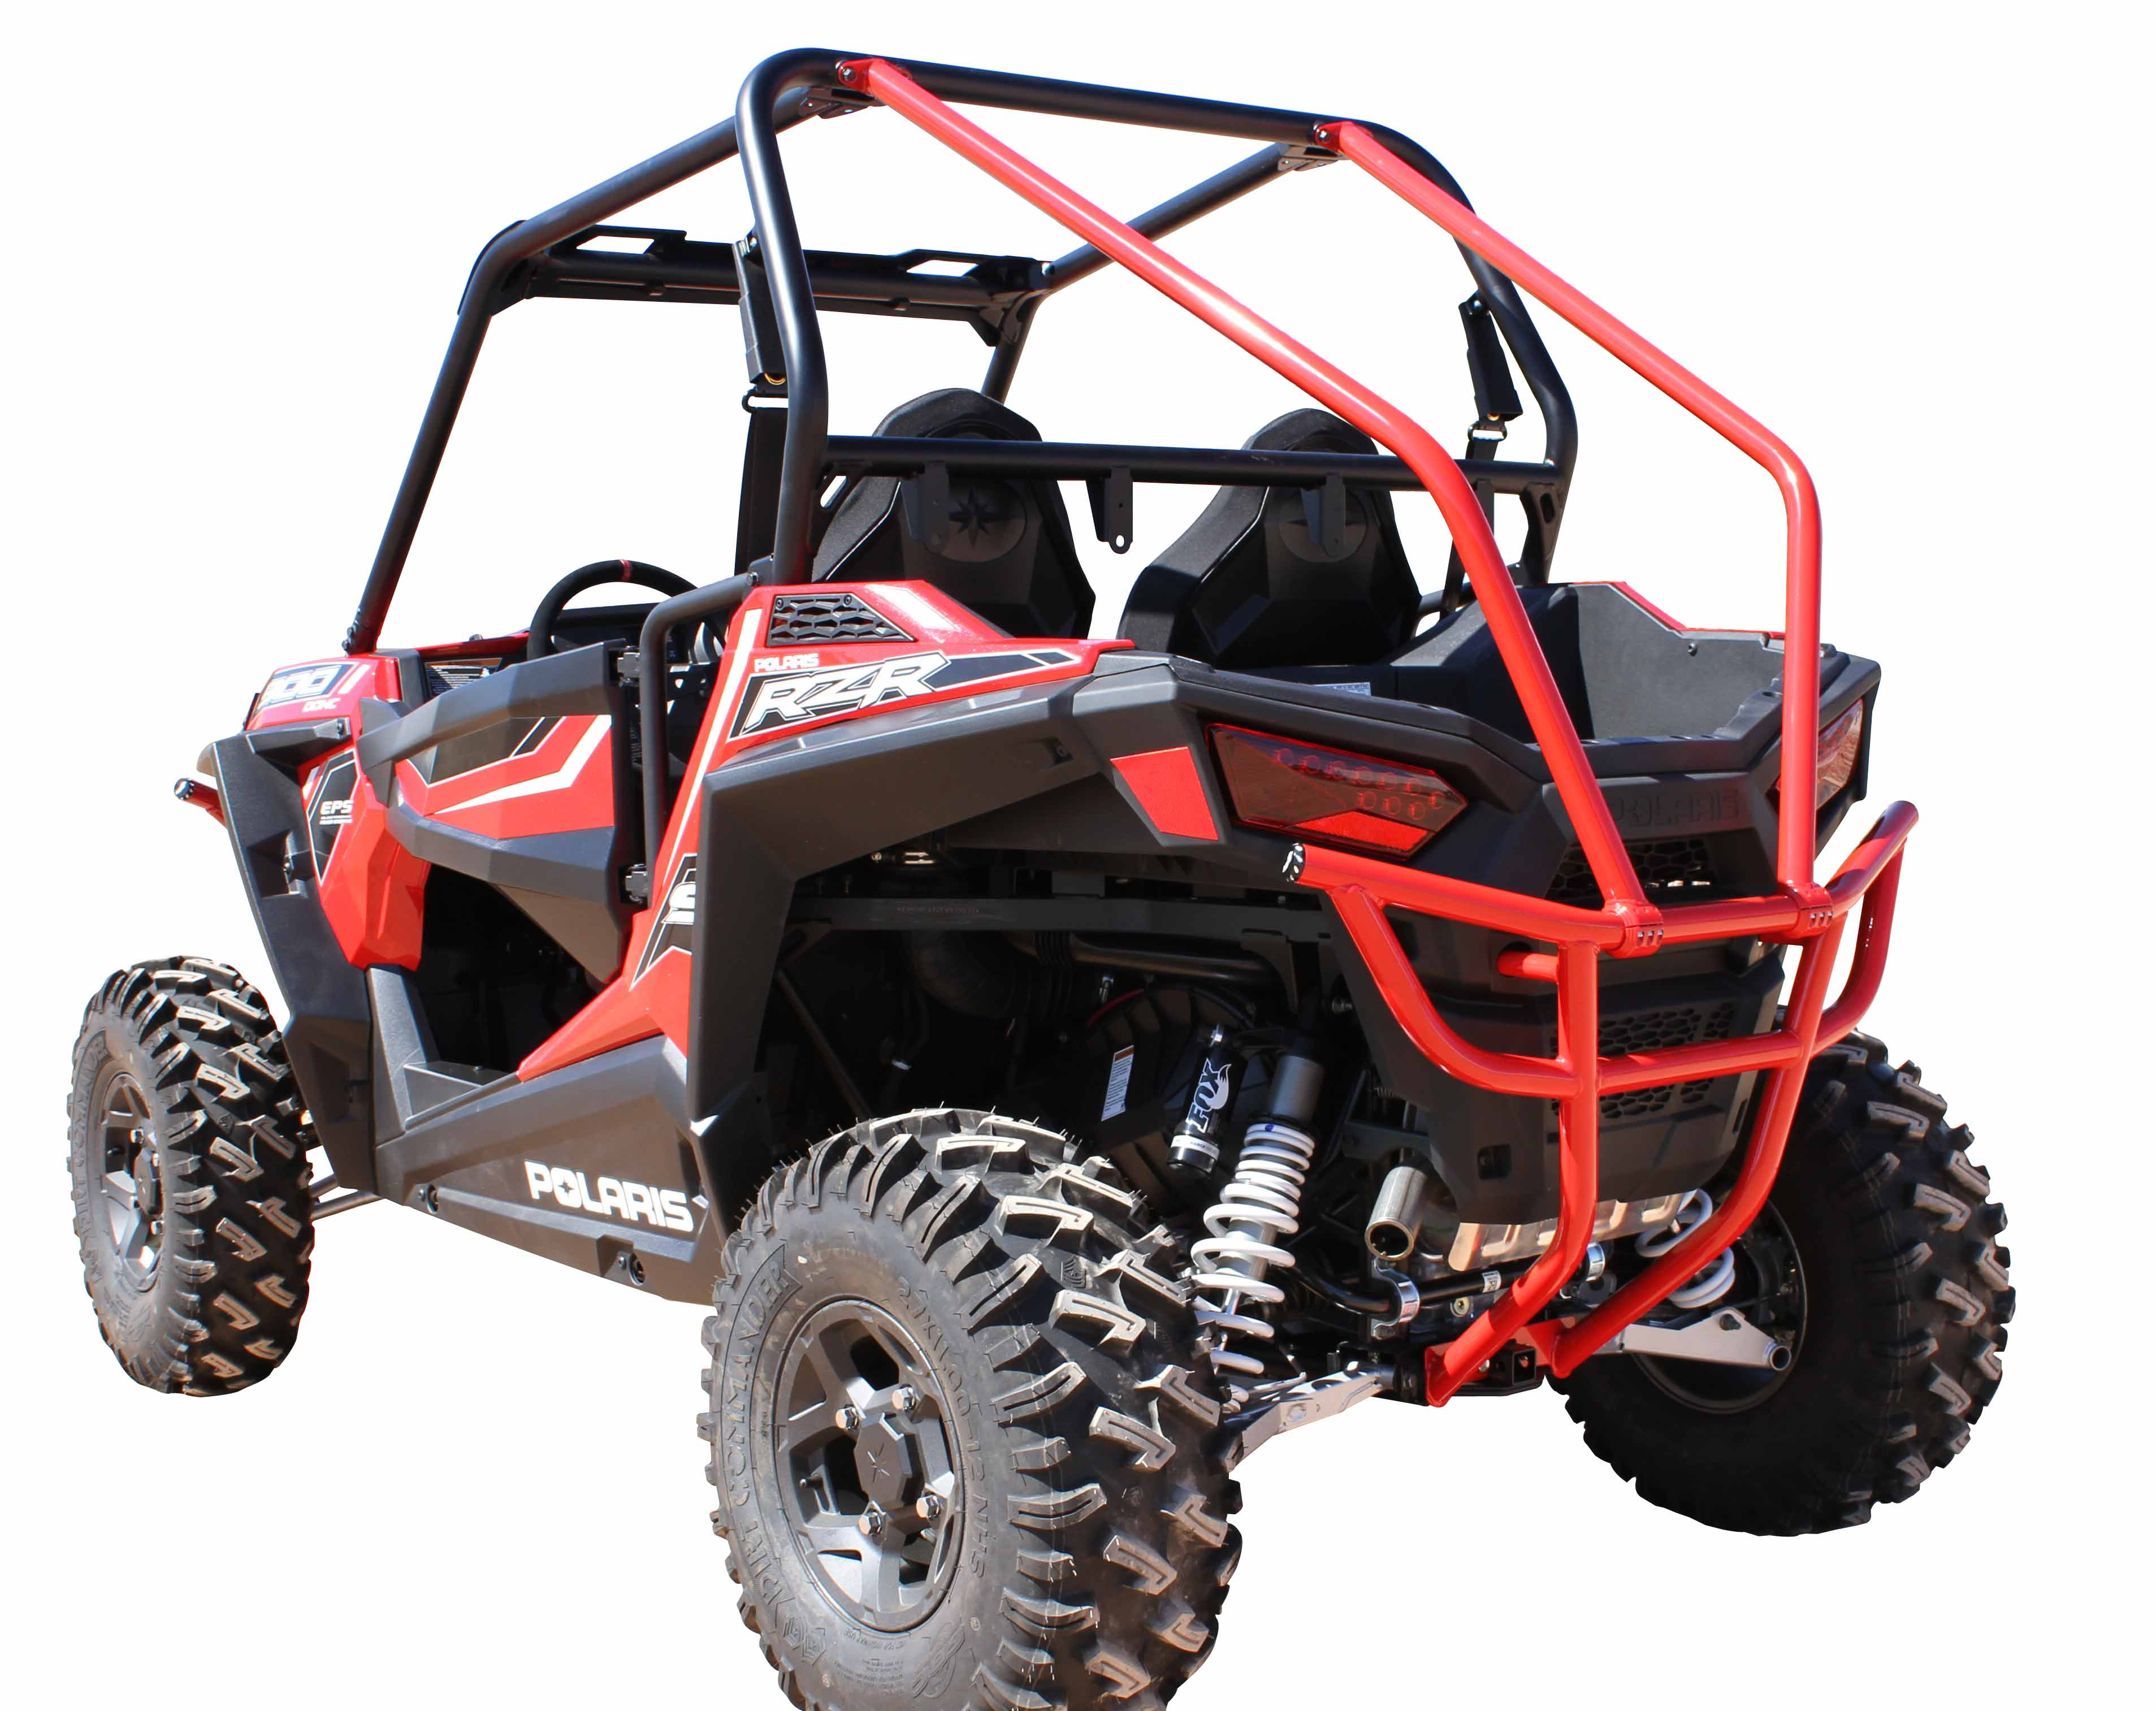 rear smash bumper for the polaris rzr s 900 xc 900. Black Bedroom Furniture Sets. Home Design Ideas